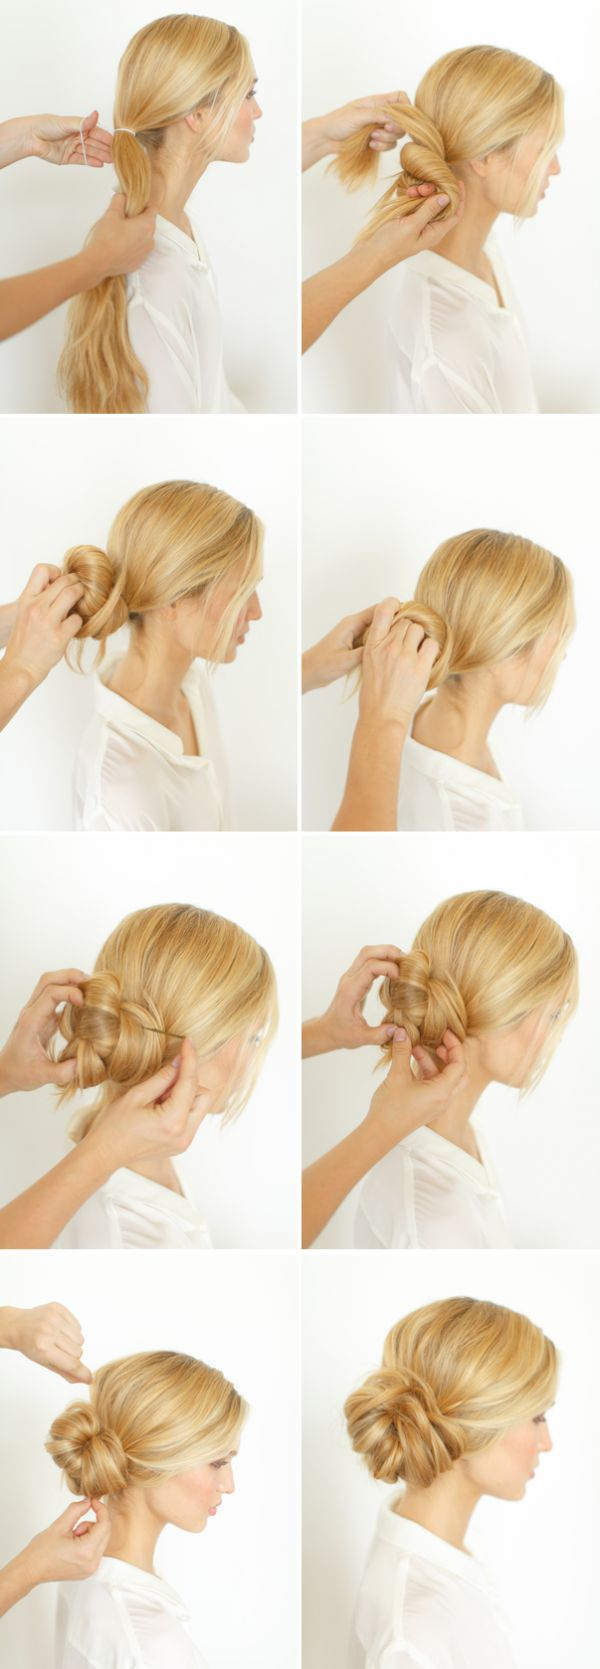 Casual twisted updo hairstyle tutorial